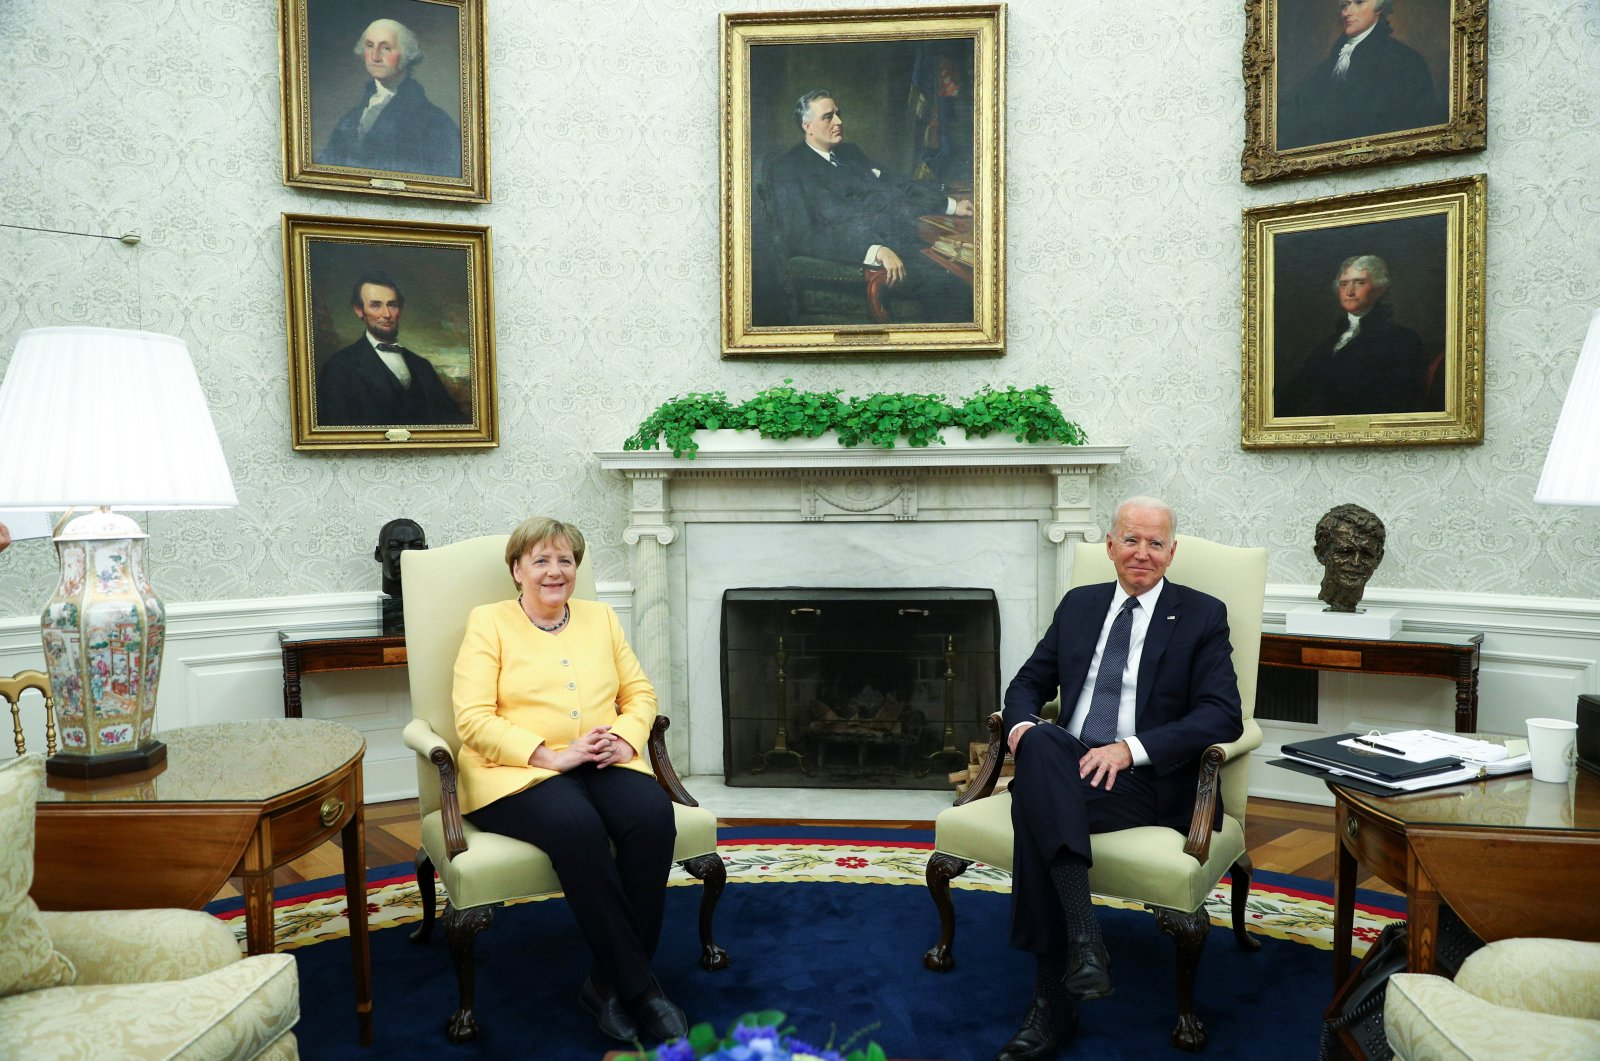 U.S. President Joe Biden holds a bilateral meeting with German Chancellor Angela Merkel in the Oval Office at the White House in Washington, D.C., U.S., July 15, 2021. (Reuters Photo)